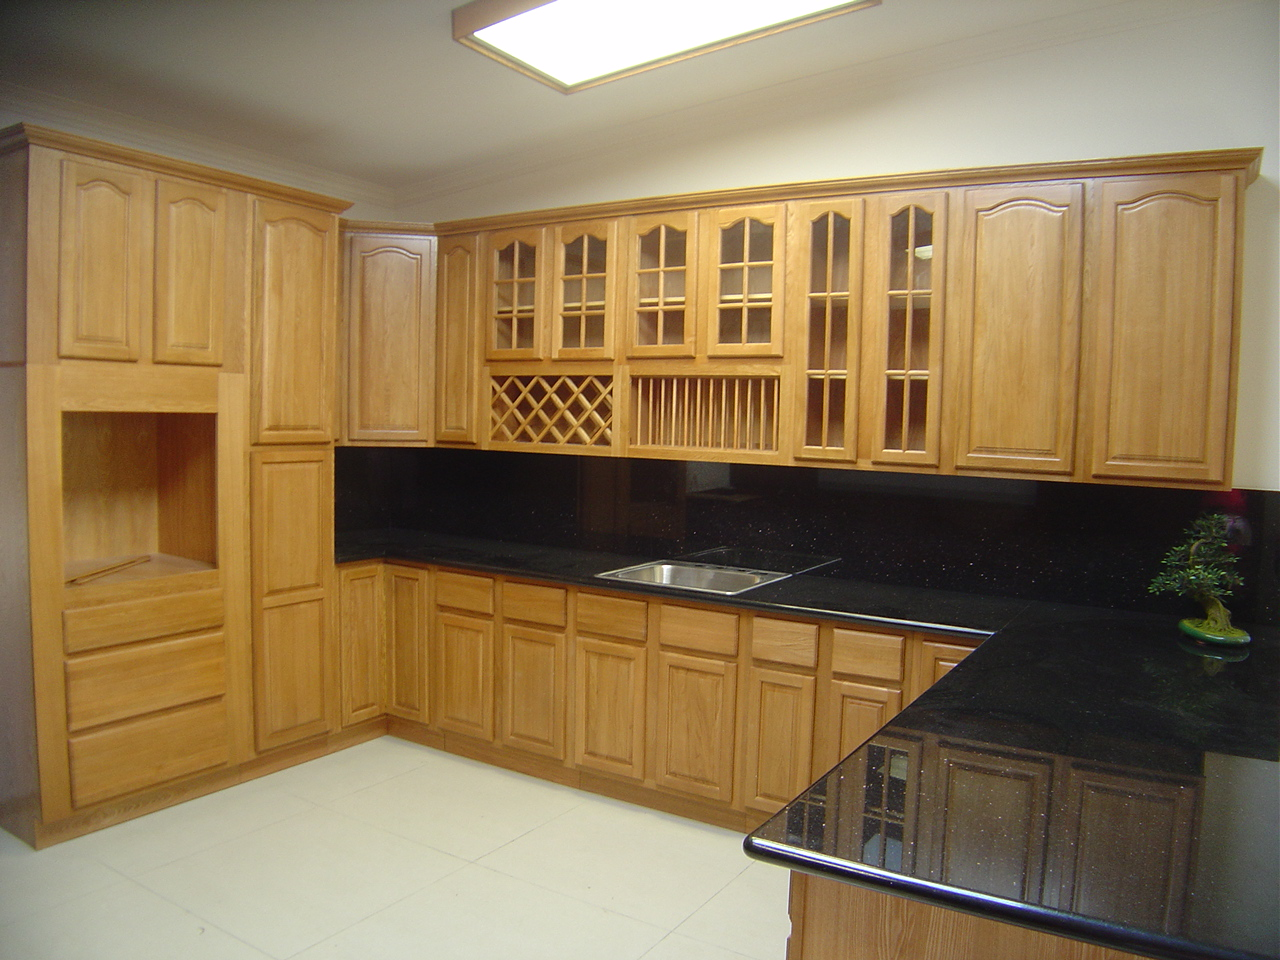 Five Advantages Of Semi-Custom Cabinets